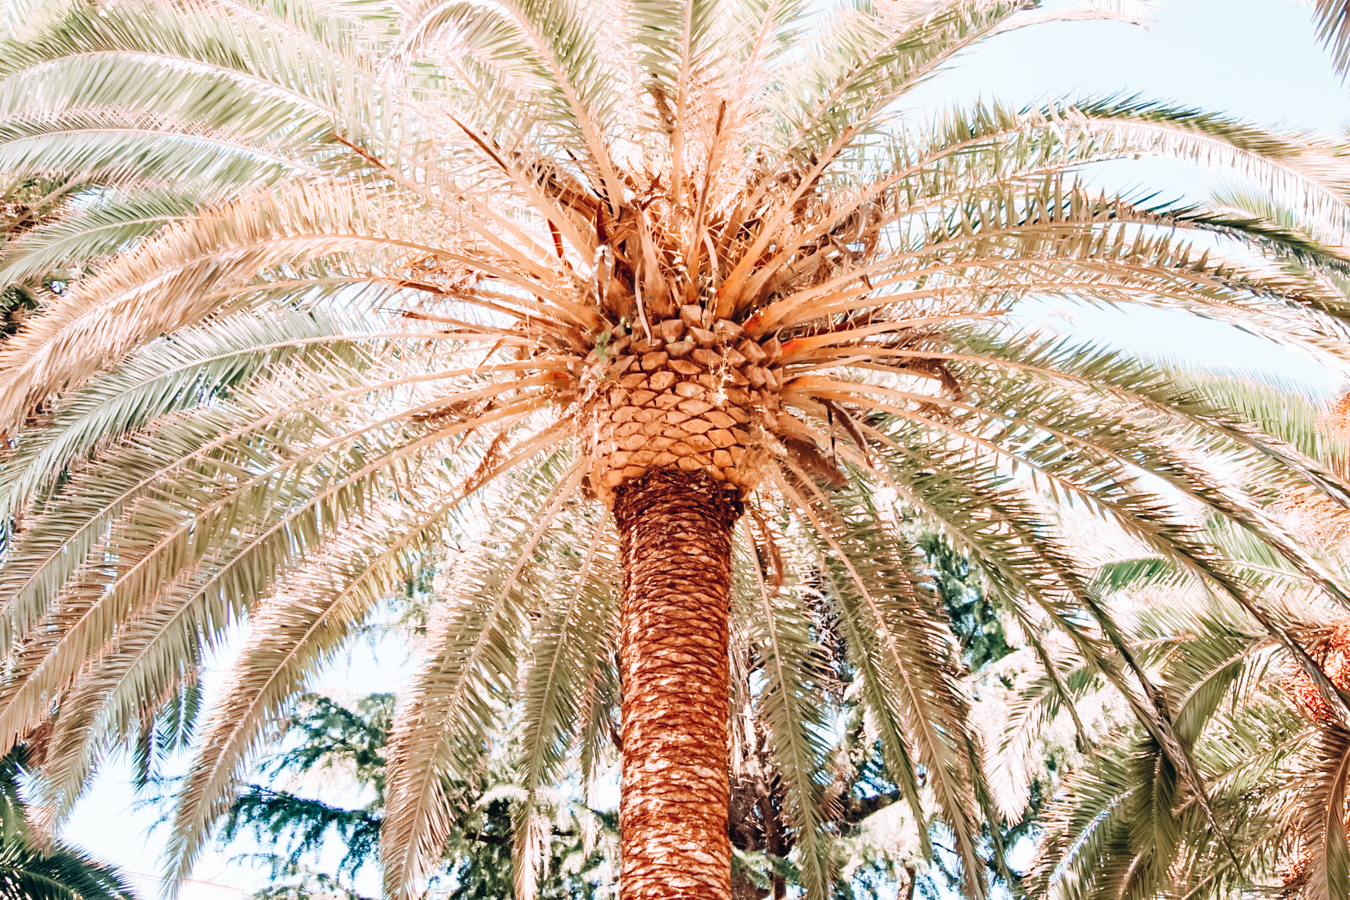 A palm tree in Palm Springs